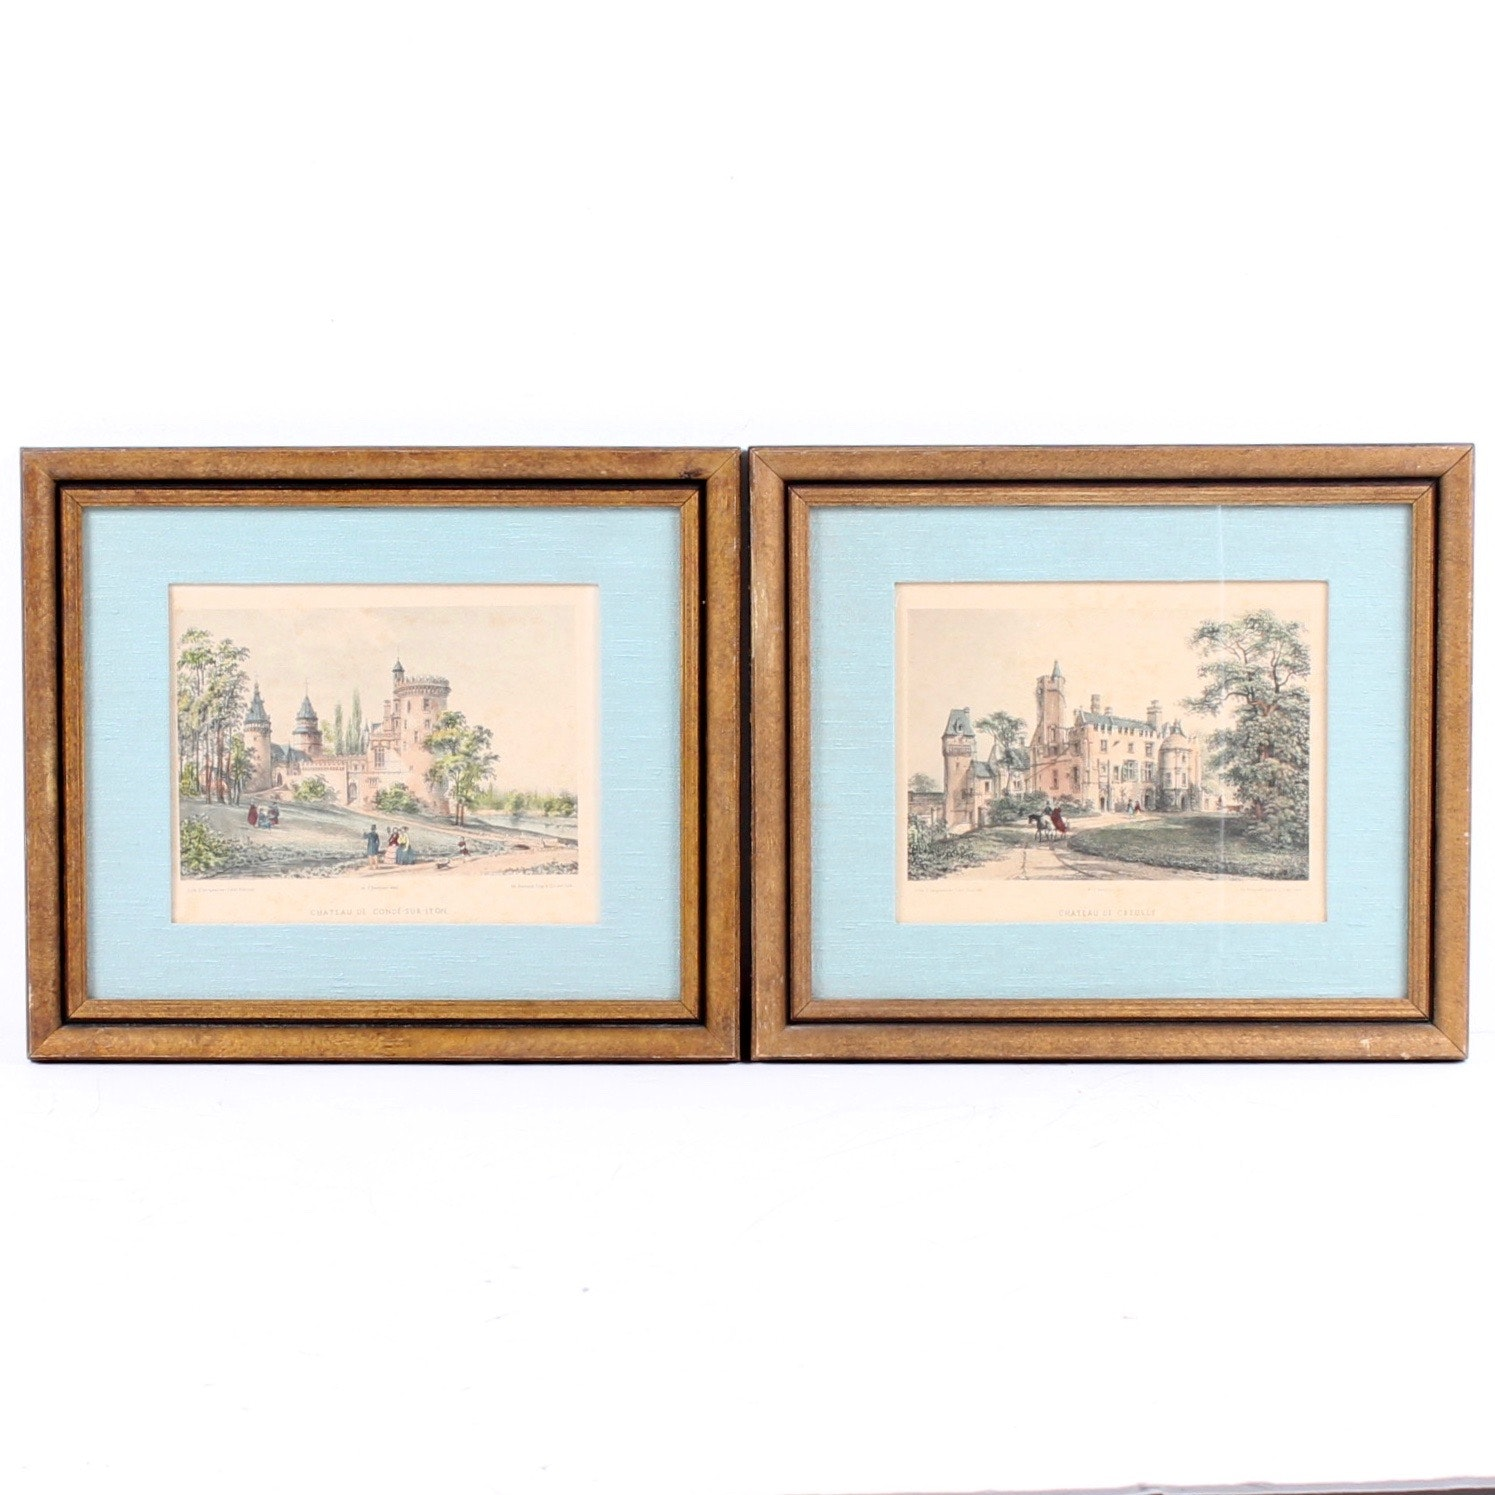 Chateau Framed Lithographs